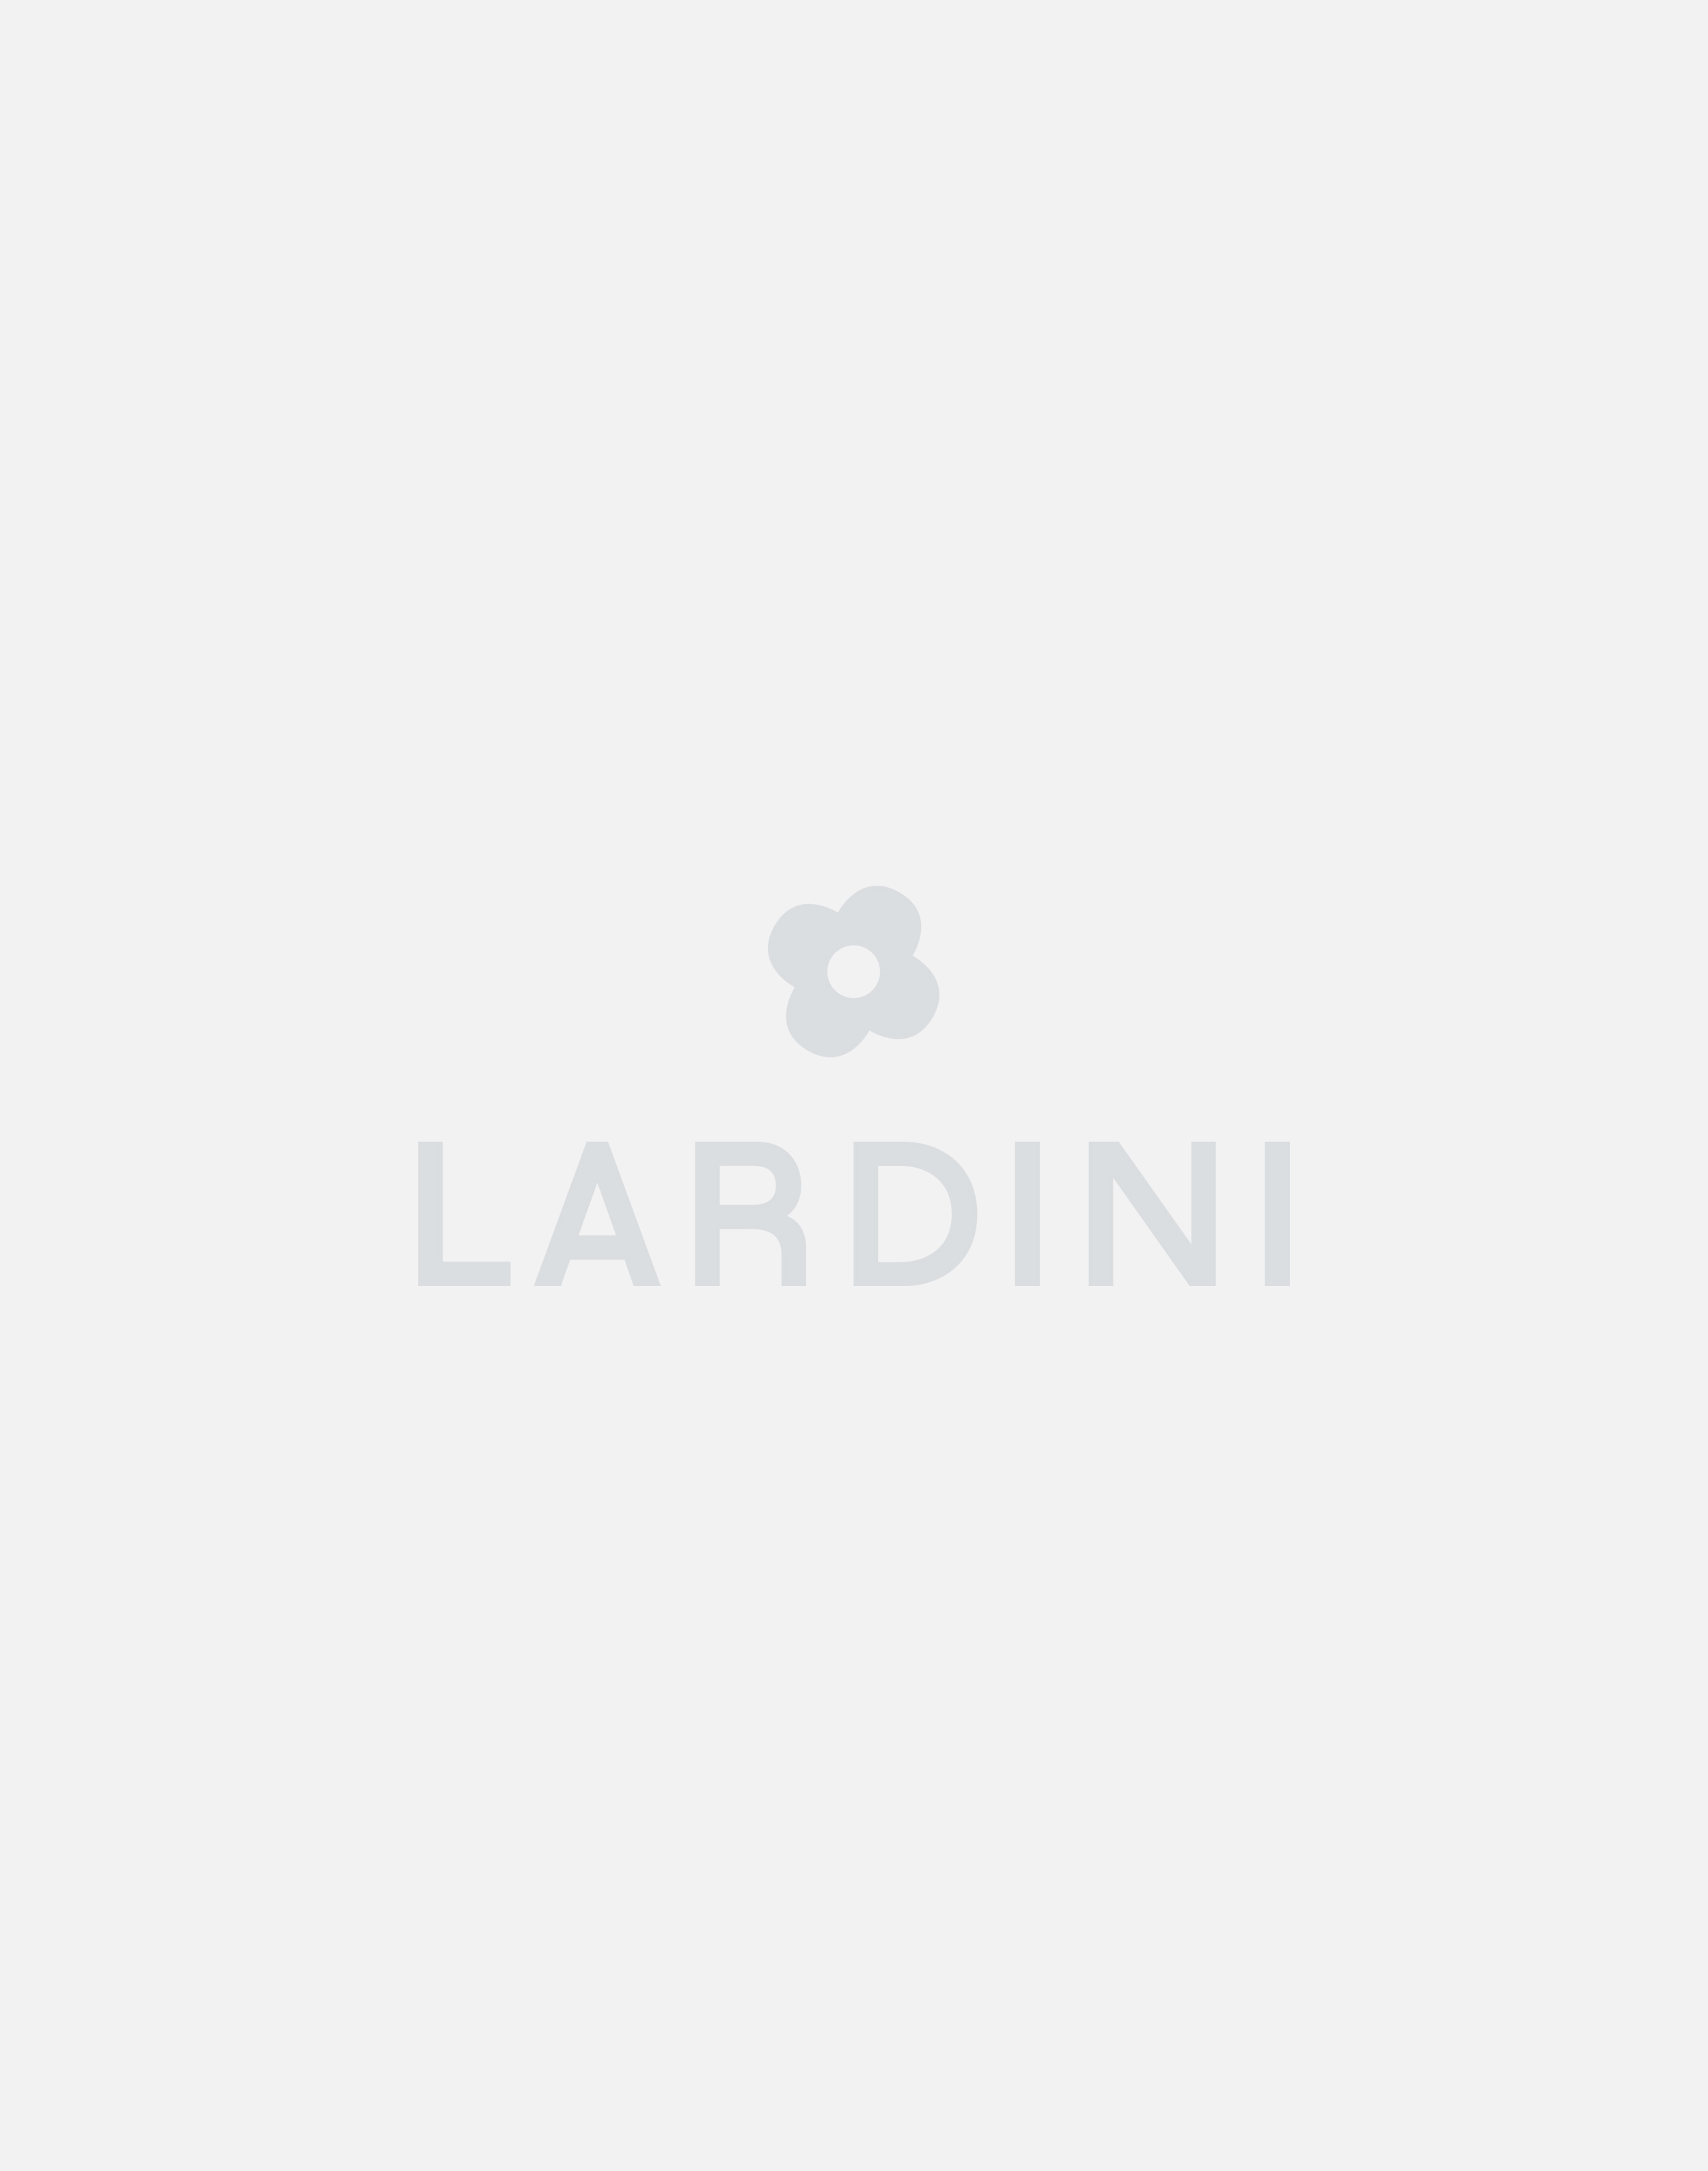 Unlined Regimental tie in shades of brown, cream and beige